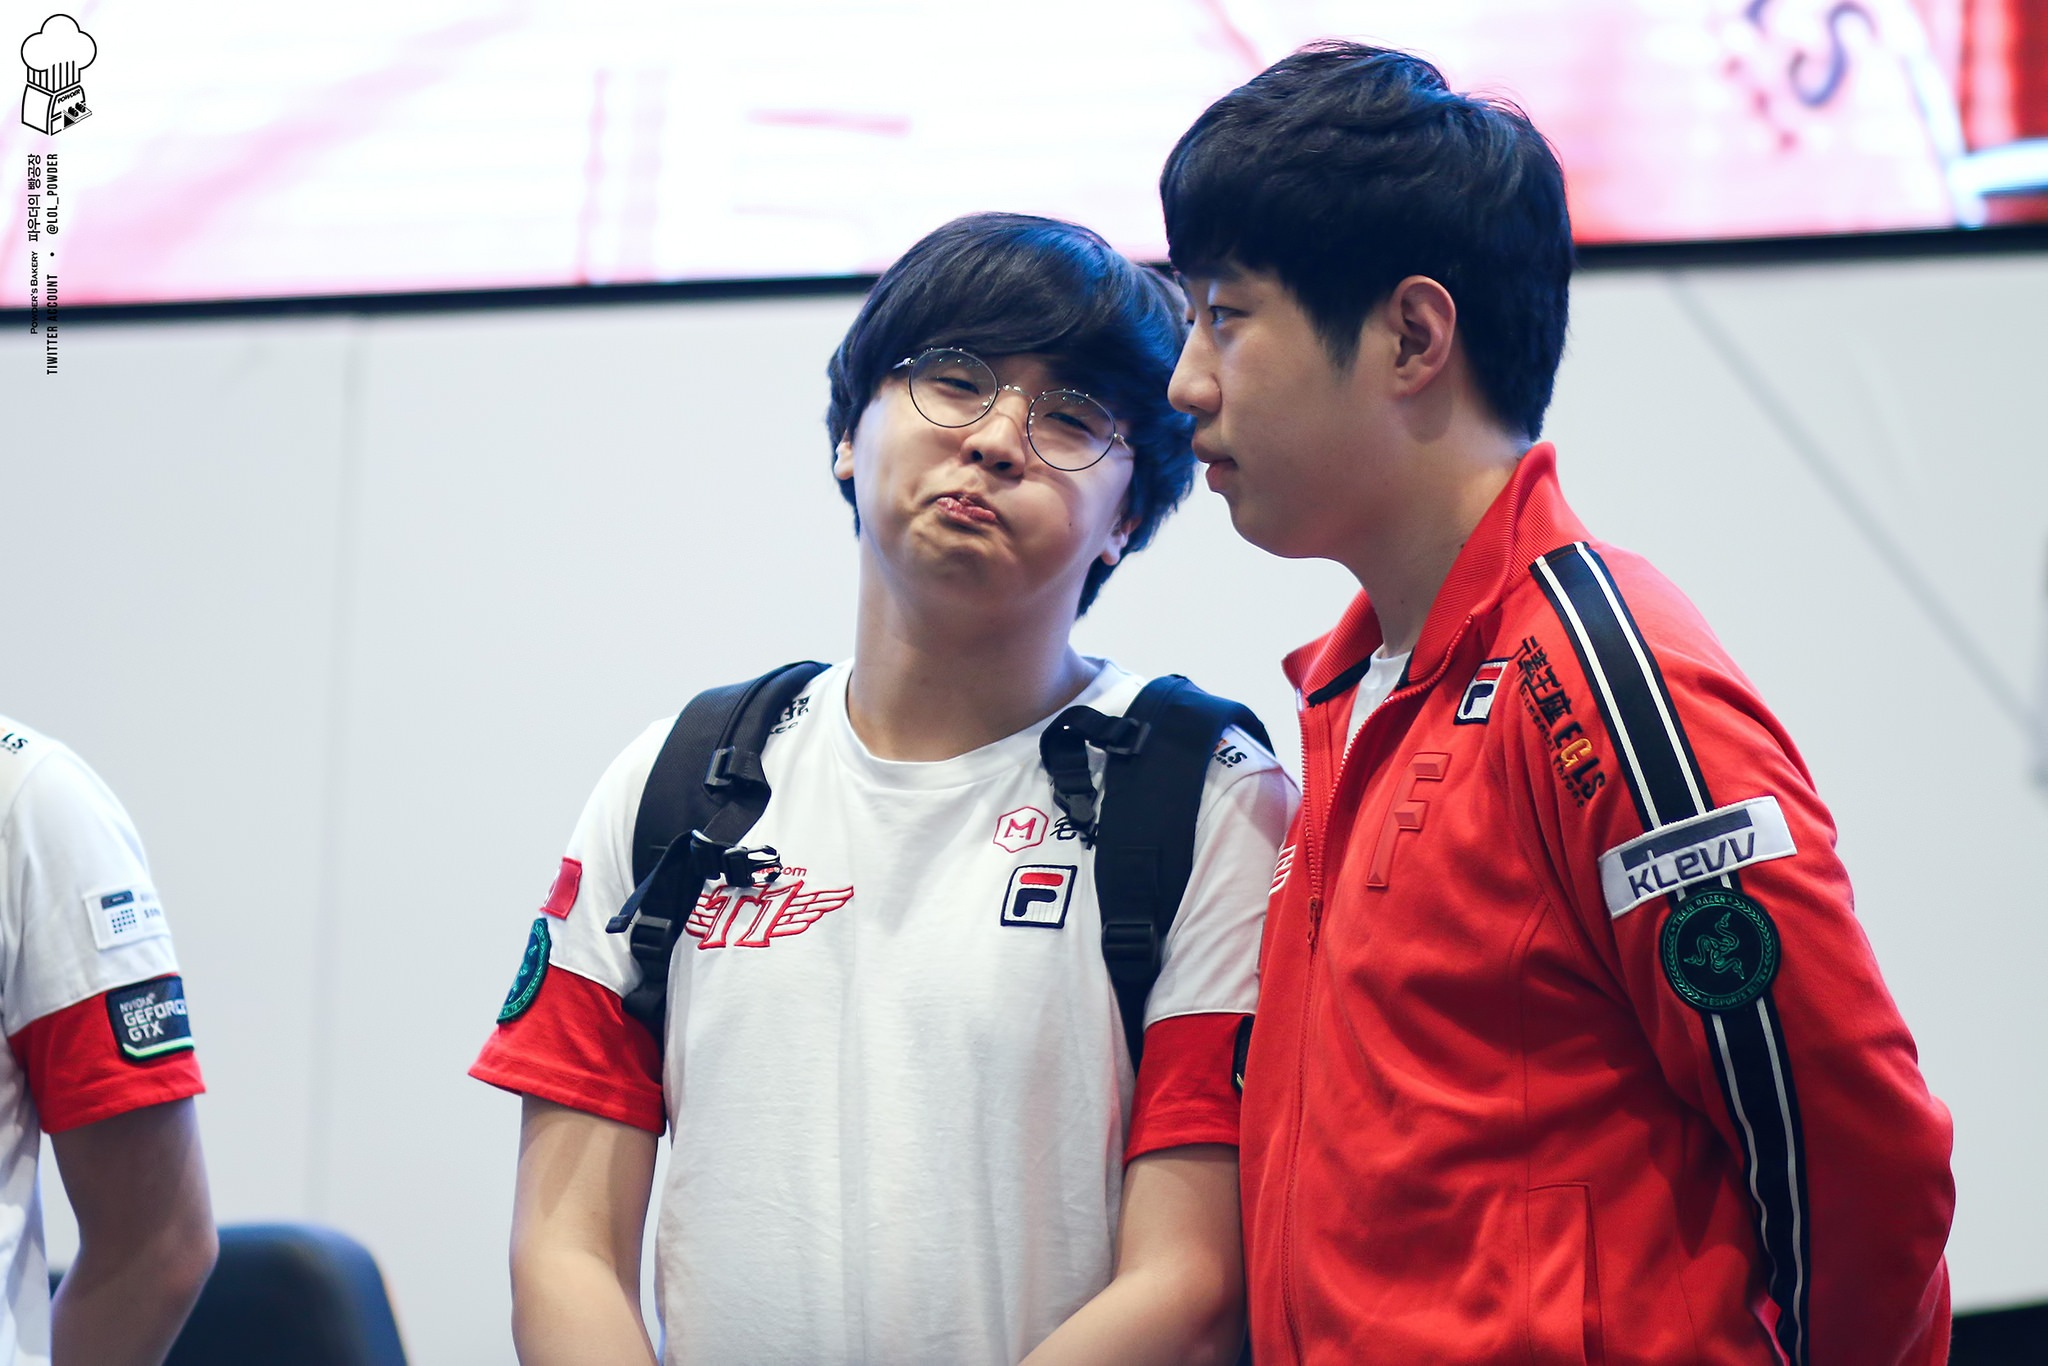 Benji and Duke leave SK Telecom T1